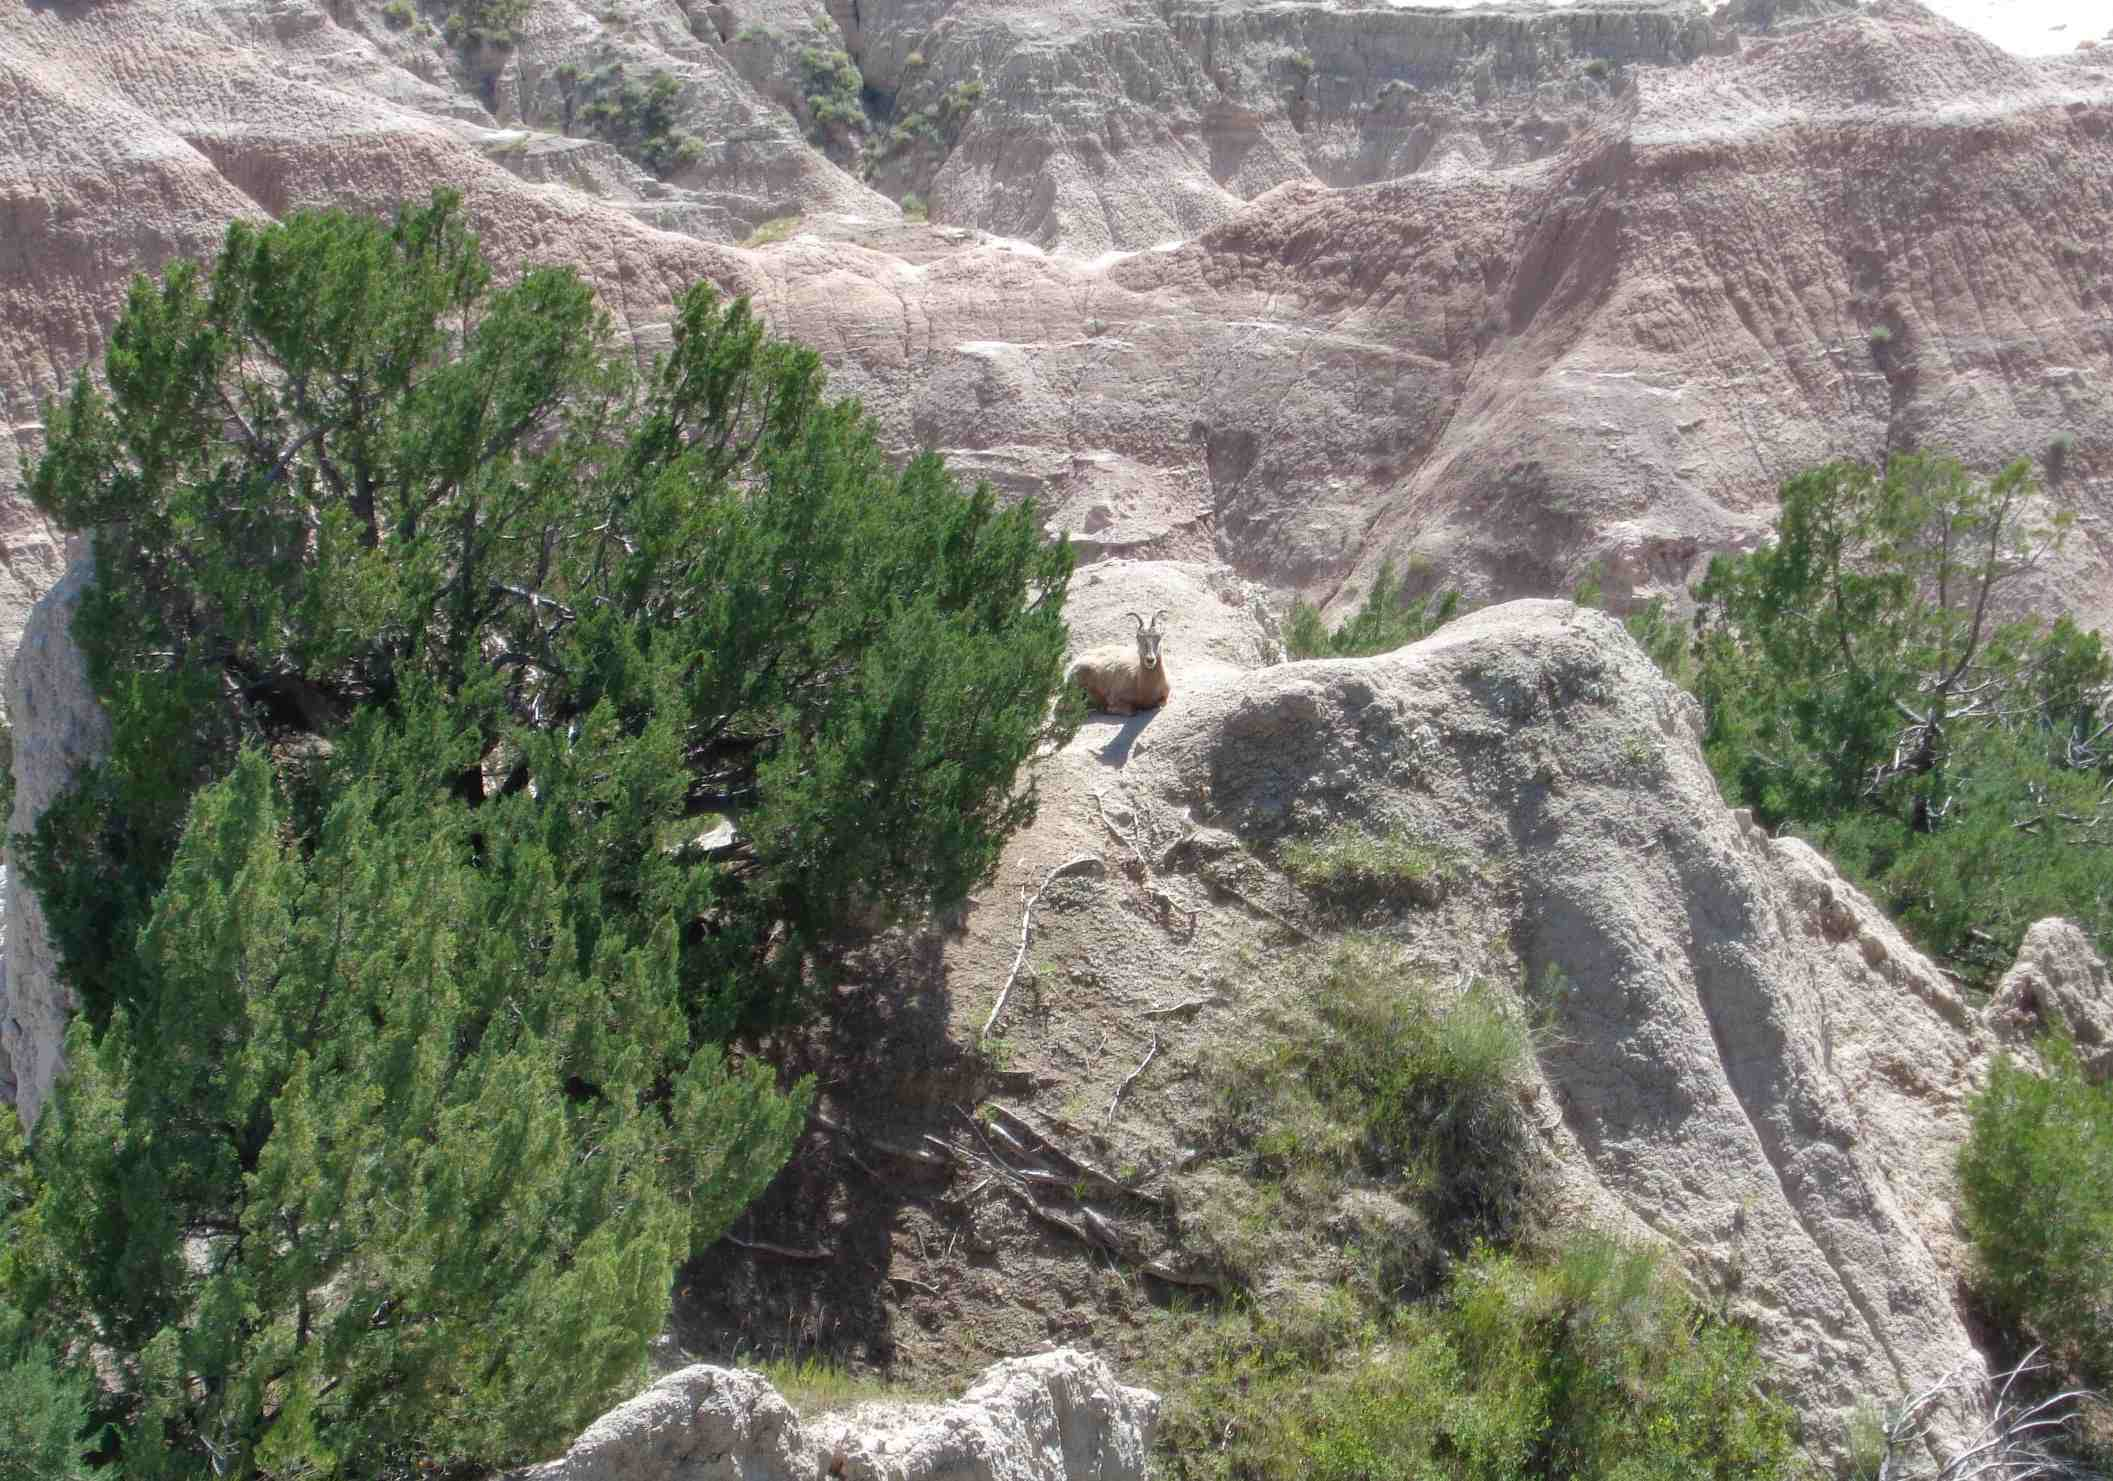 Goat at Badlands